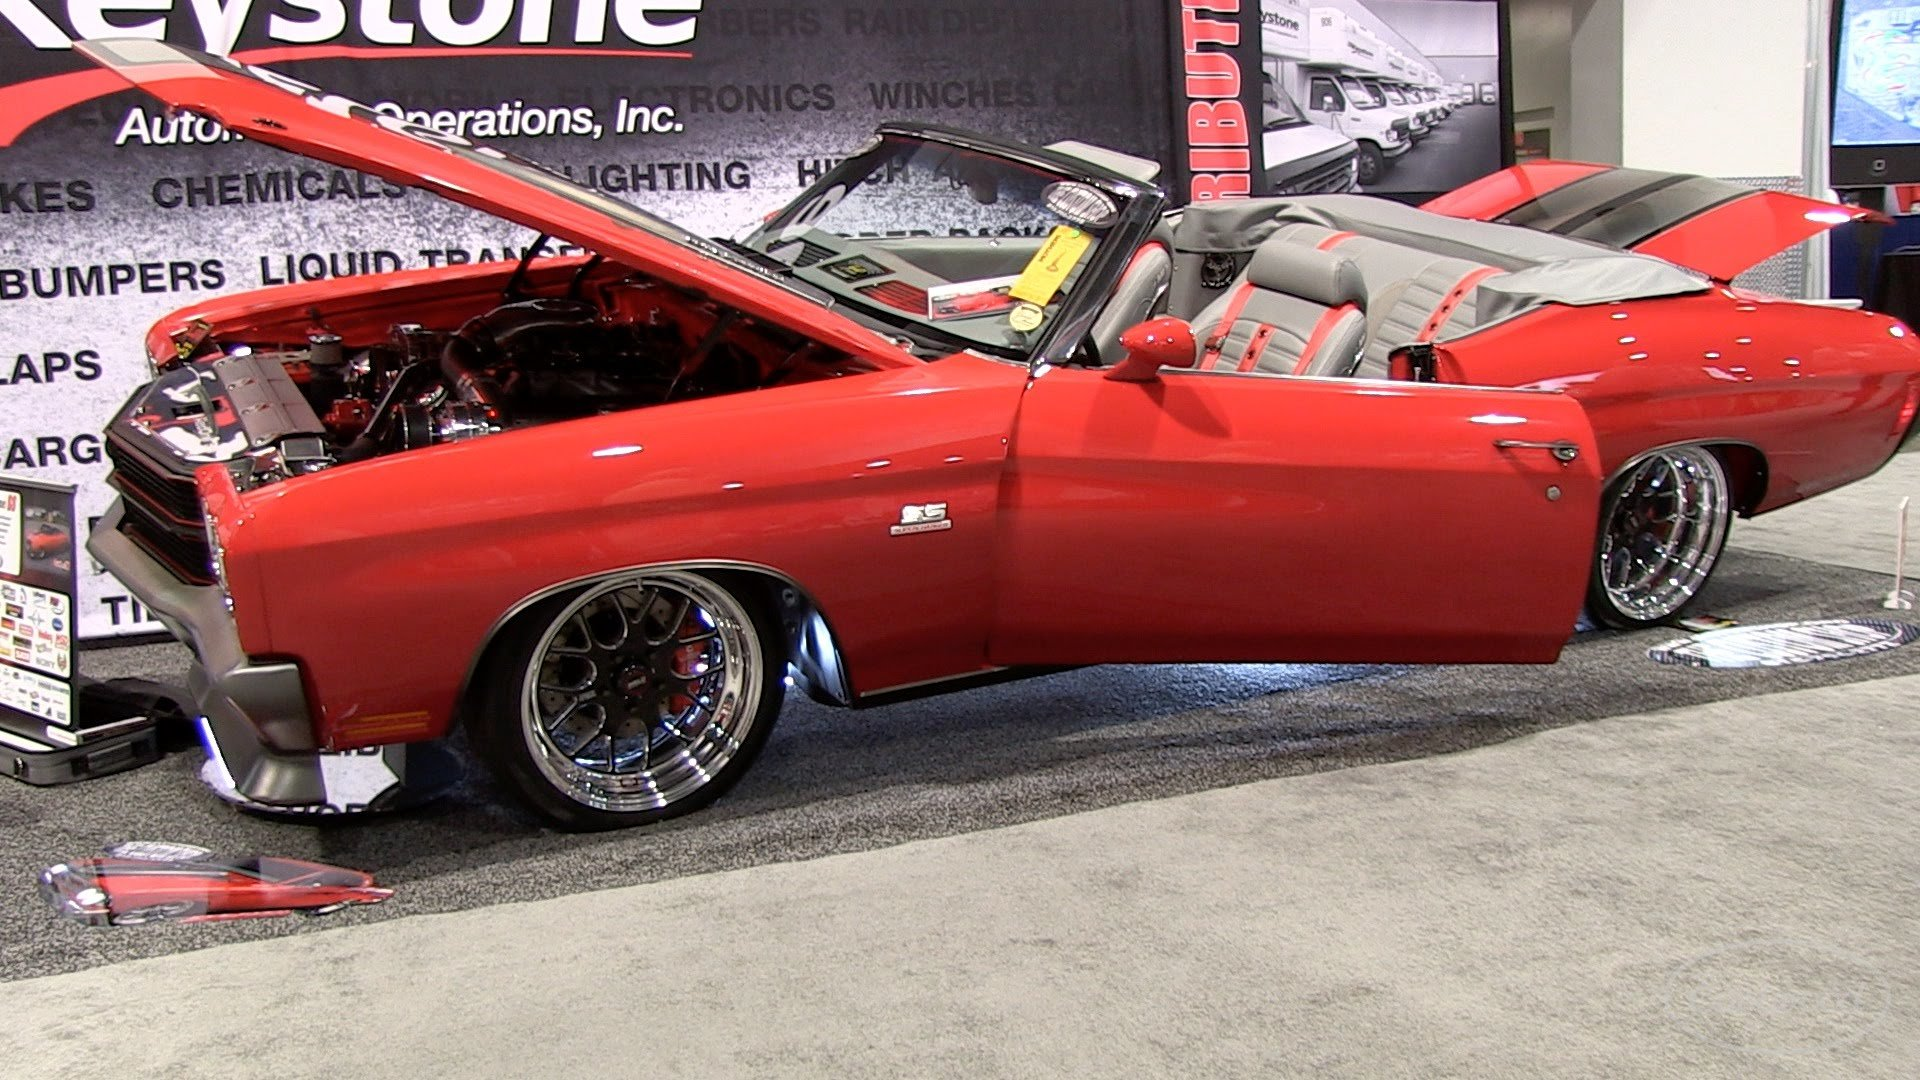 1 000 Hp Supercharged 1970 Chevelle Convertible 572 Gm